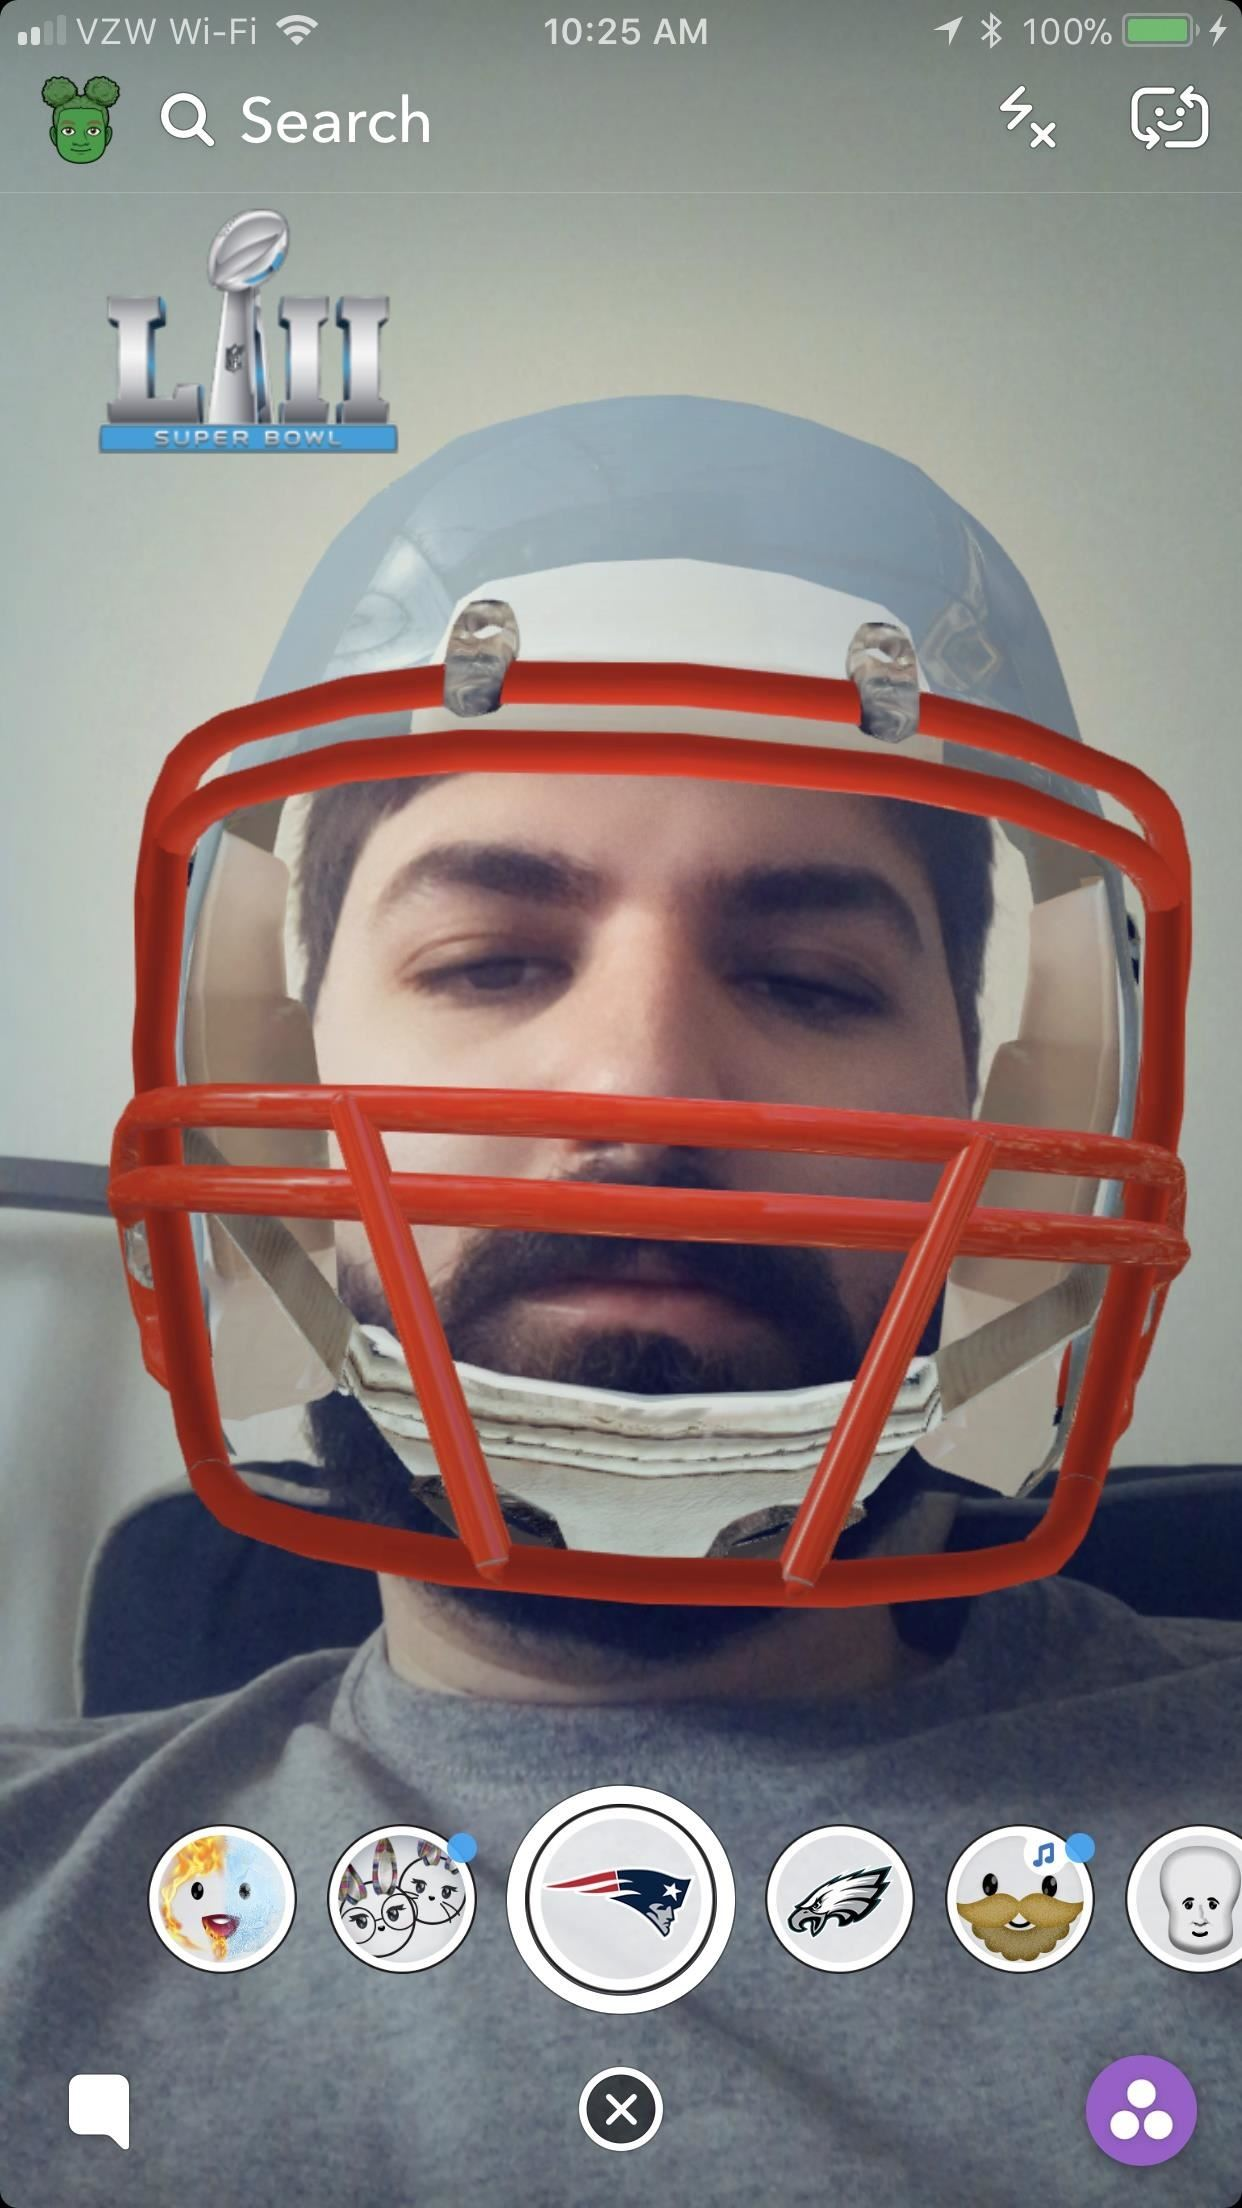 How to Get Snapchat's Super Bowl Filters & Show Your Eagles or Patriots Pride